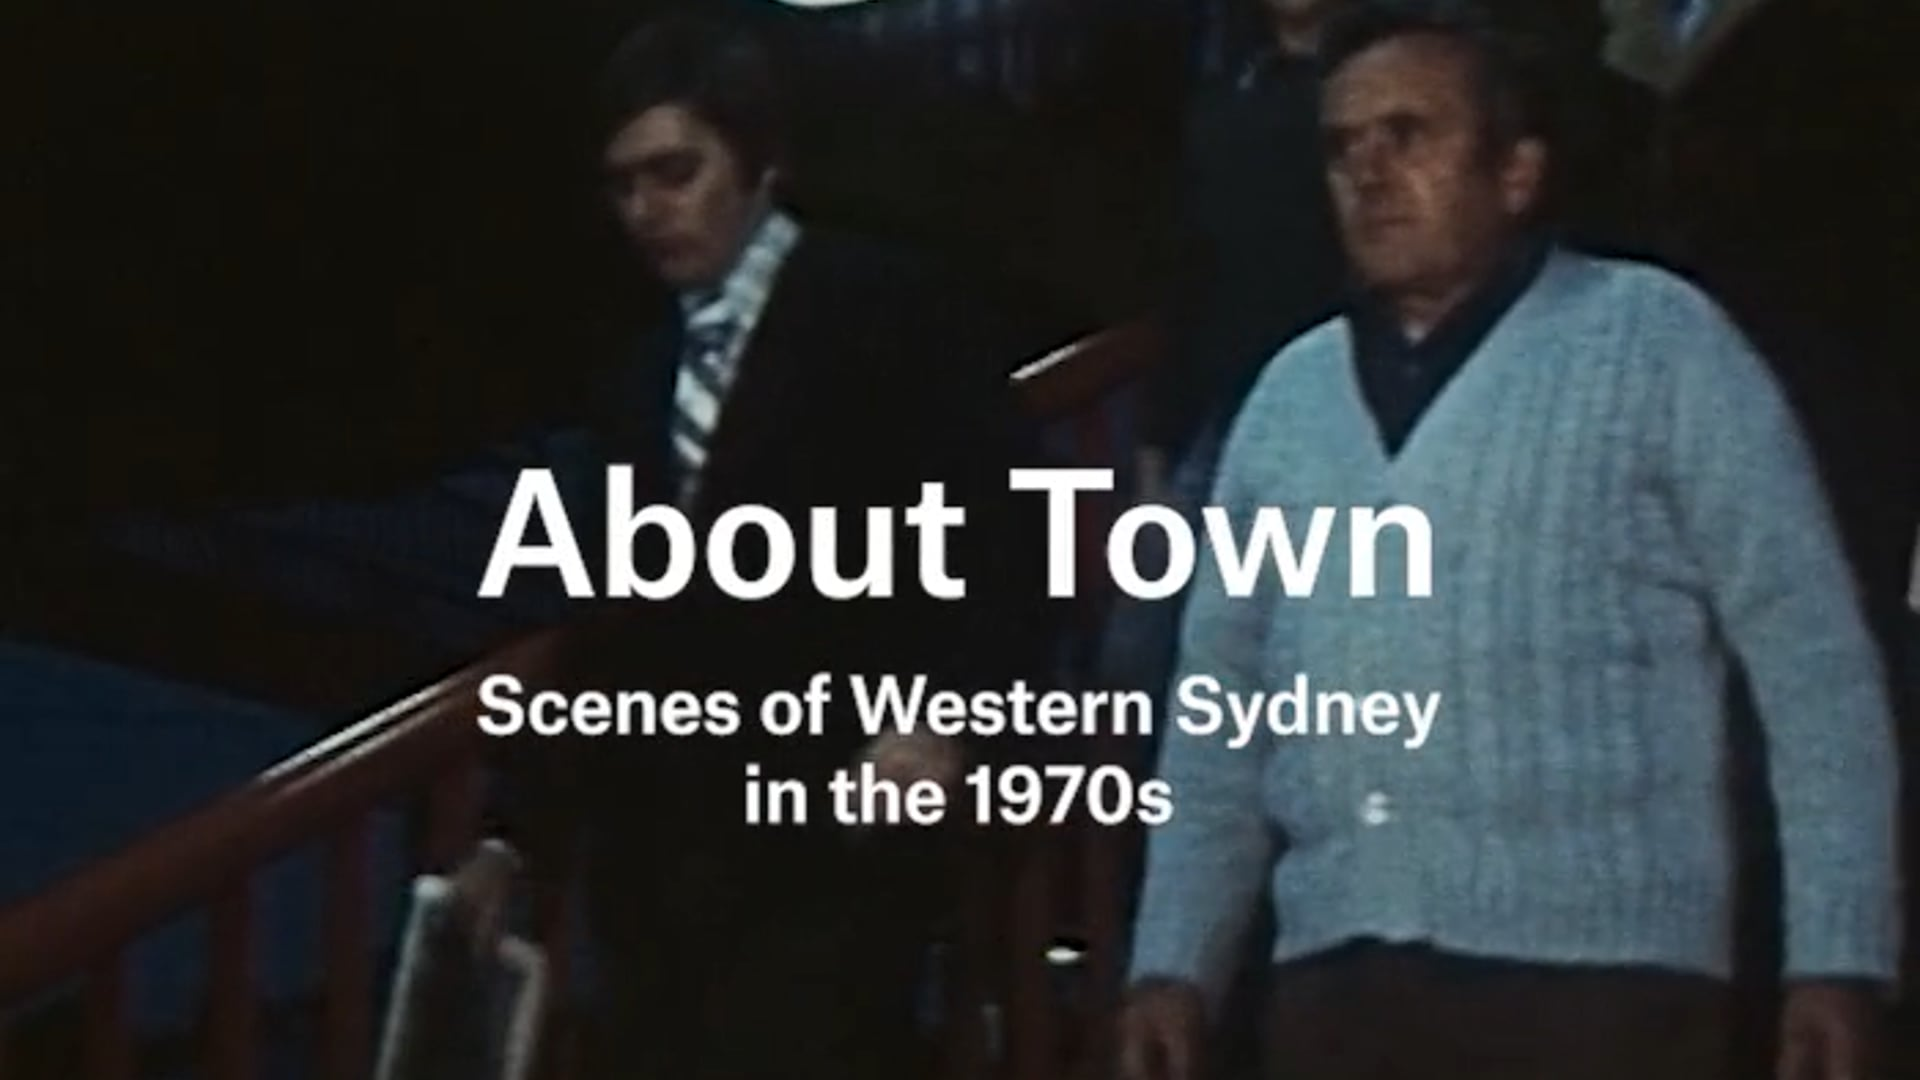 About Town (ABC TV Archives with ESEM Projects)